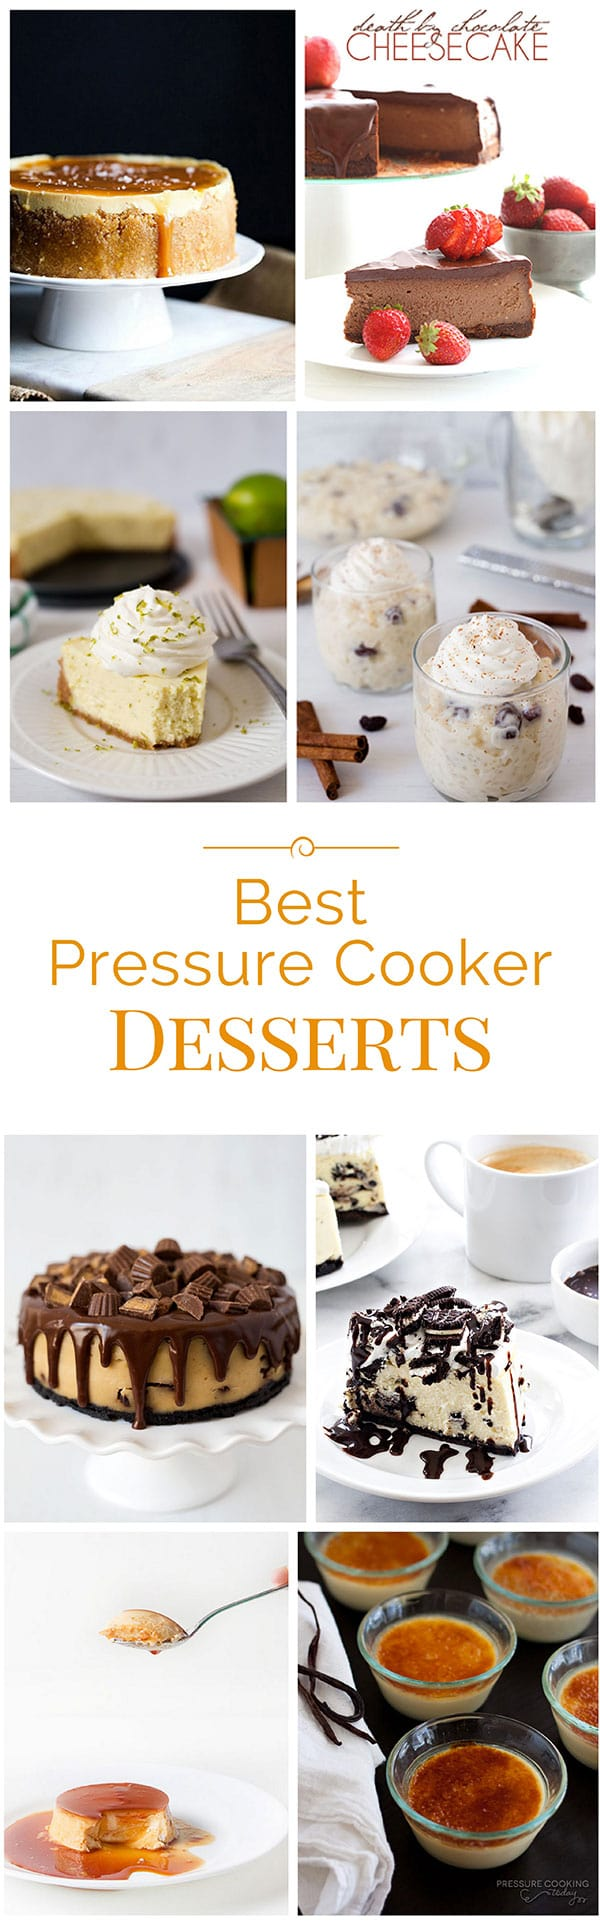 One of my favorite things to make in the pressure cooker is dessert! Today I'm sharing a roundup of some of the best pressure cooker desserts on the web.